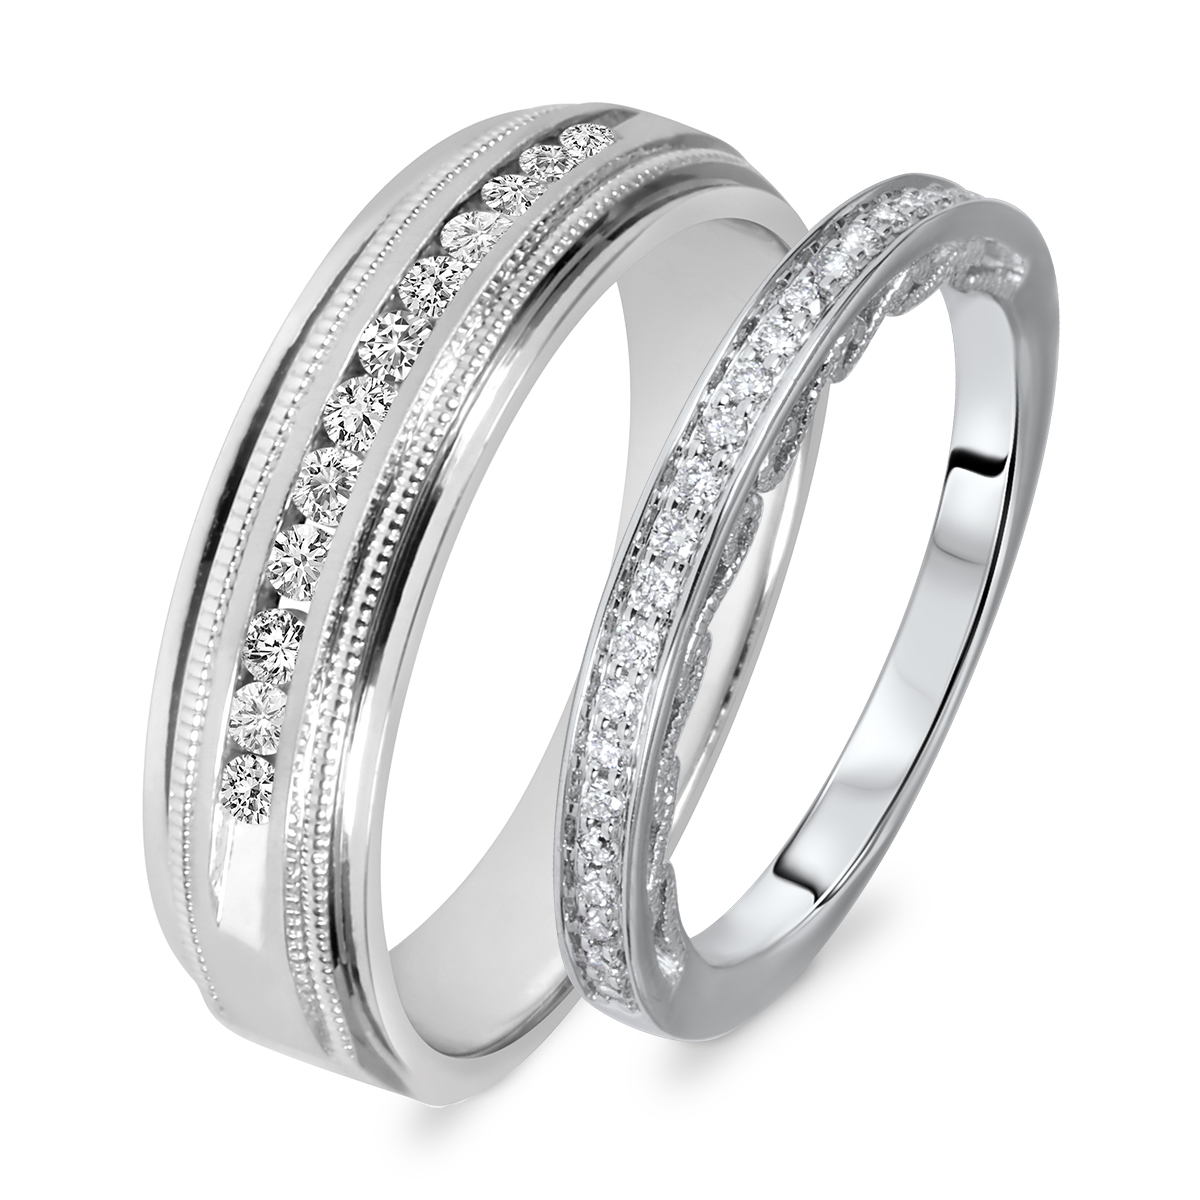 38 carat tw round cut diamond his and hers wedding band set 10k white gold - His Hers Wedding Rings